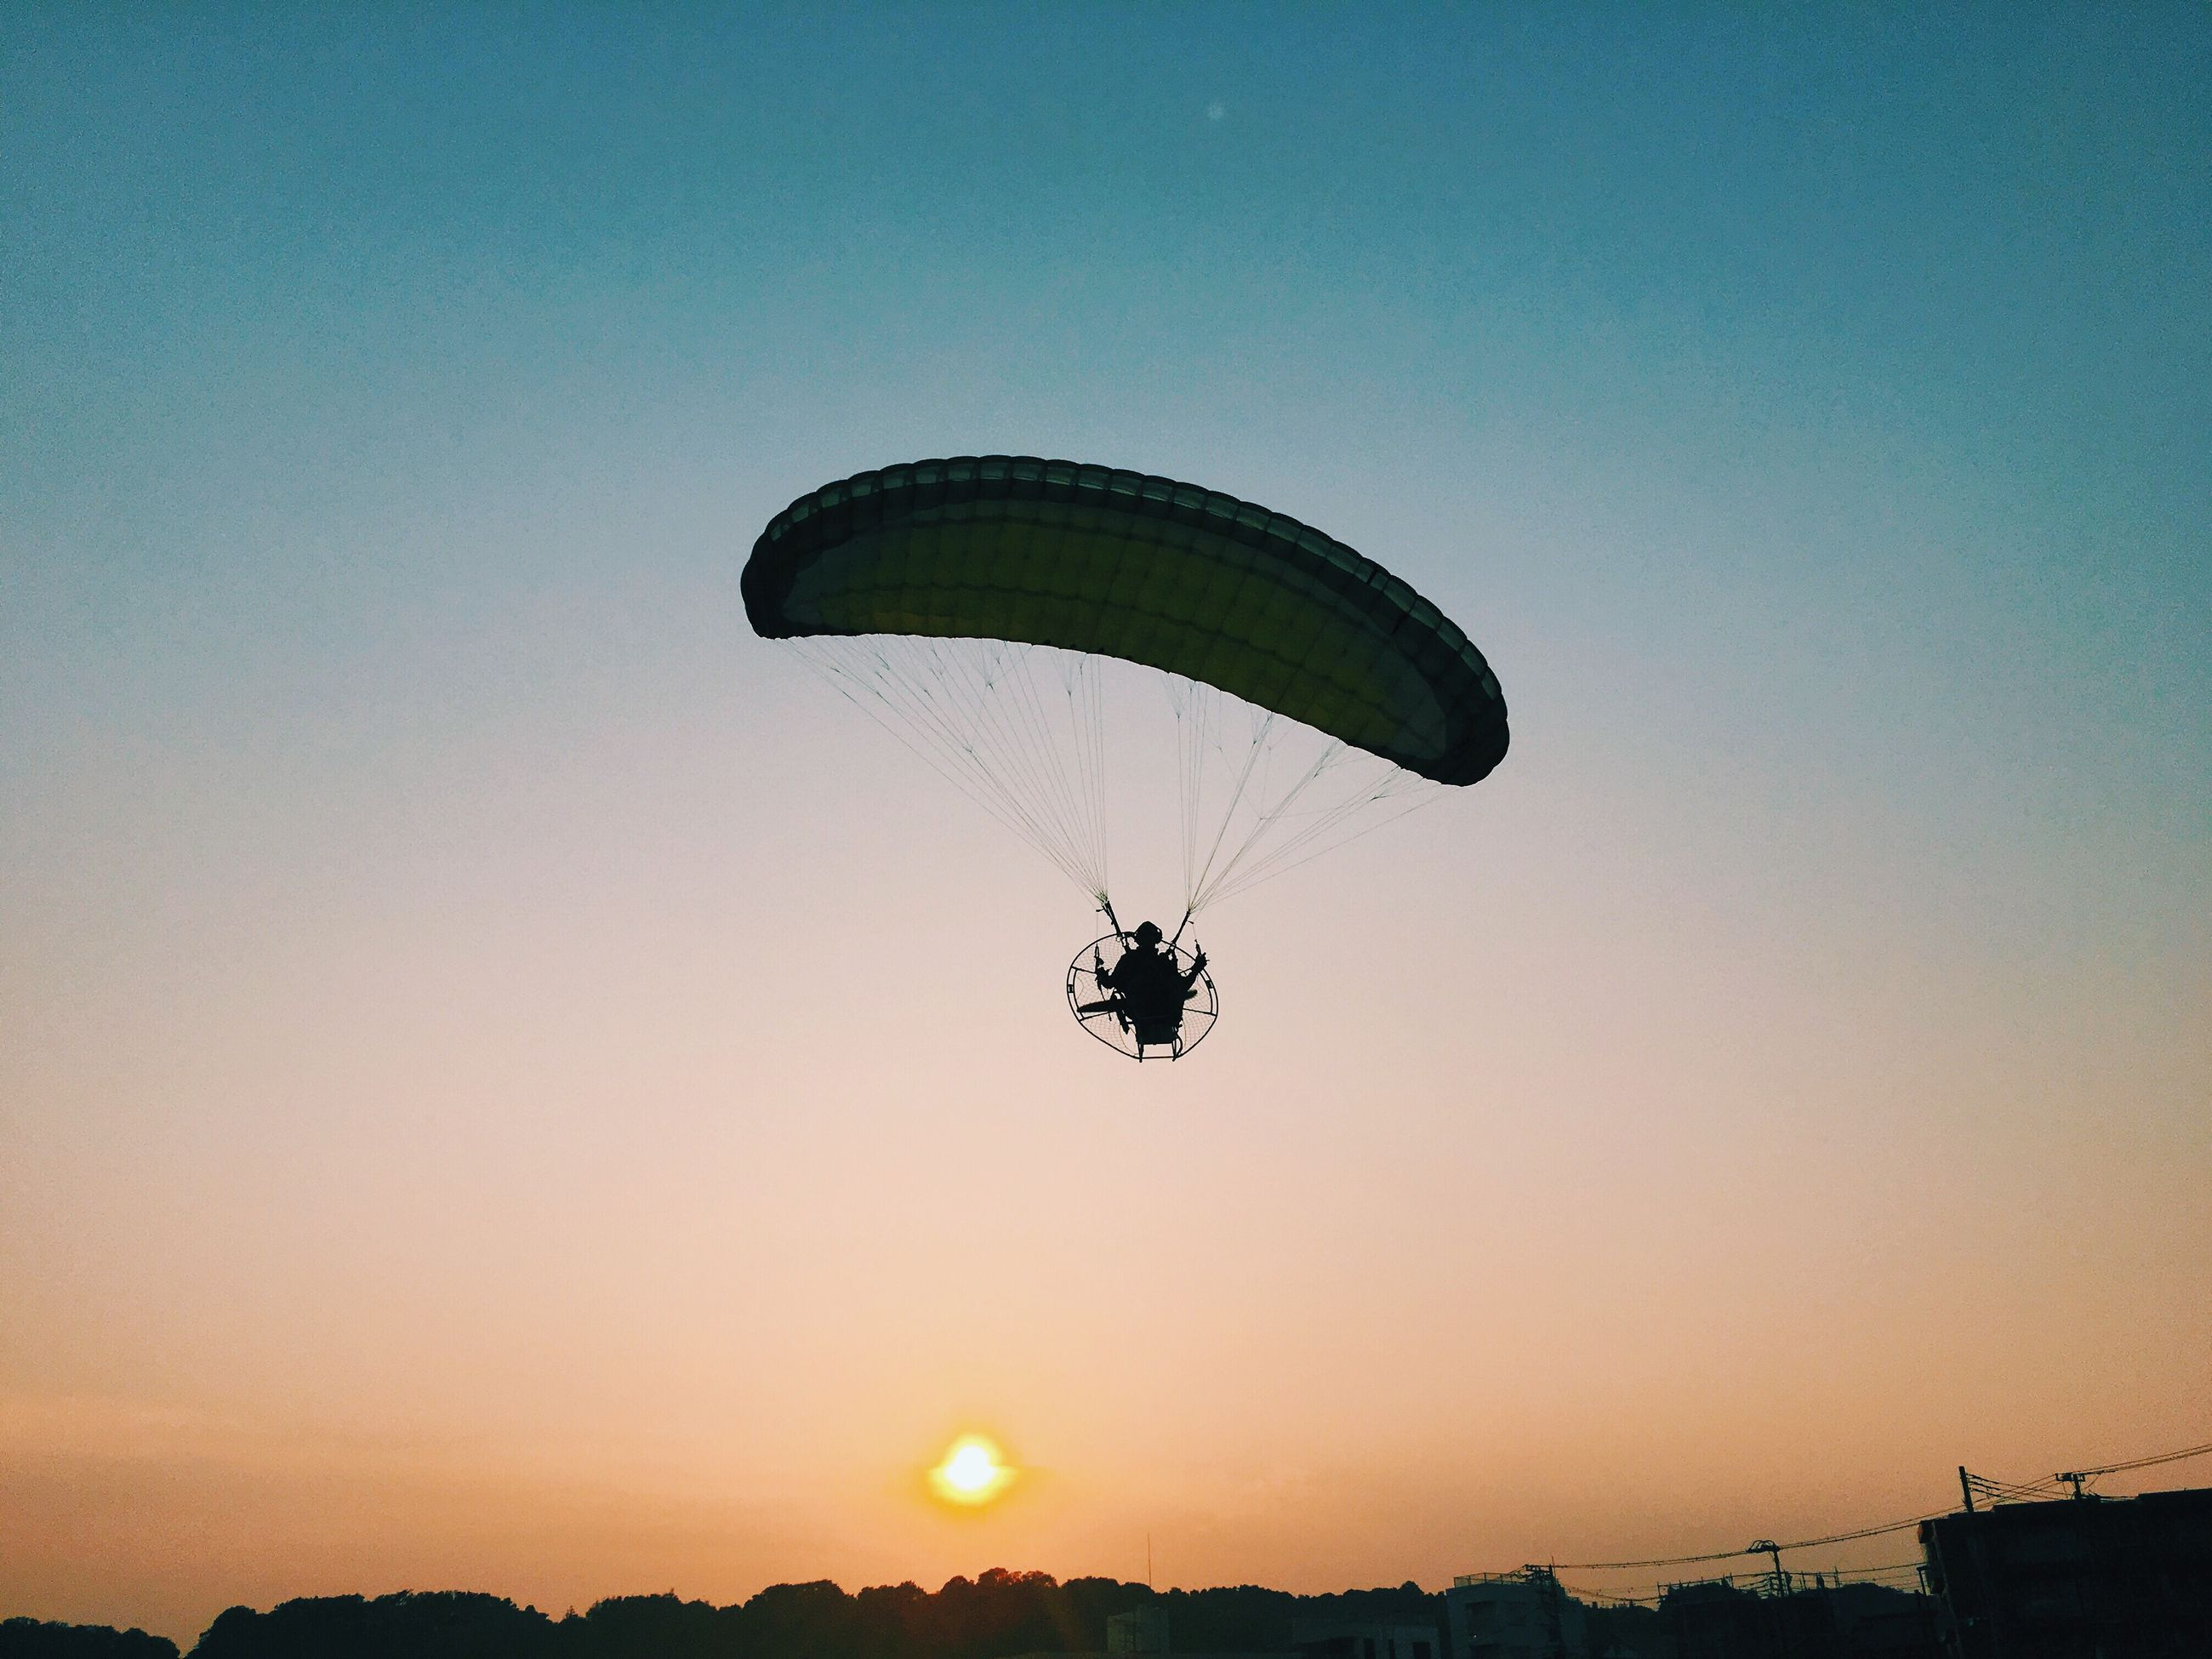 clear sky, mid-air, parachute, low angle view, extreme sports, adventure, leisure activity, copy space, flying, sport, silhouette, sunset, hot air balloon, lifestyles, fun, unrecognizable person, transportation, paragliding